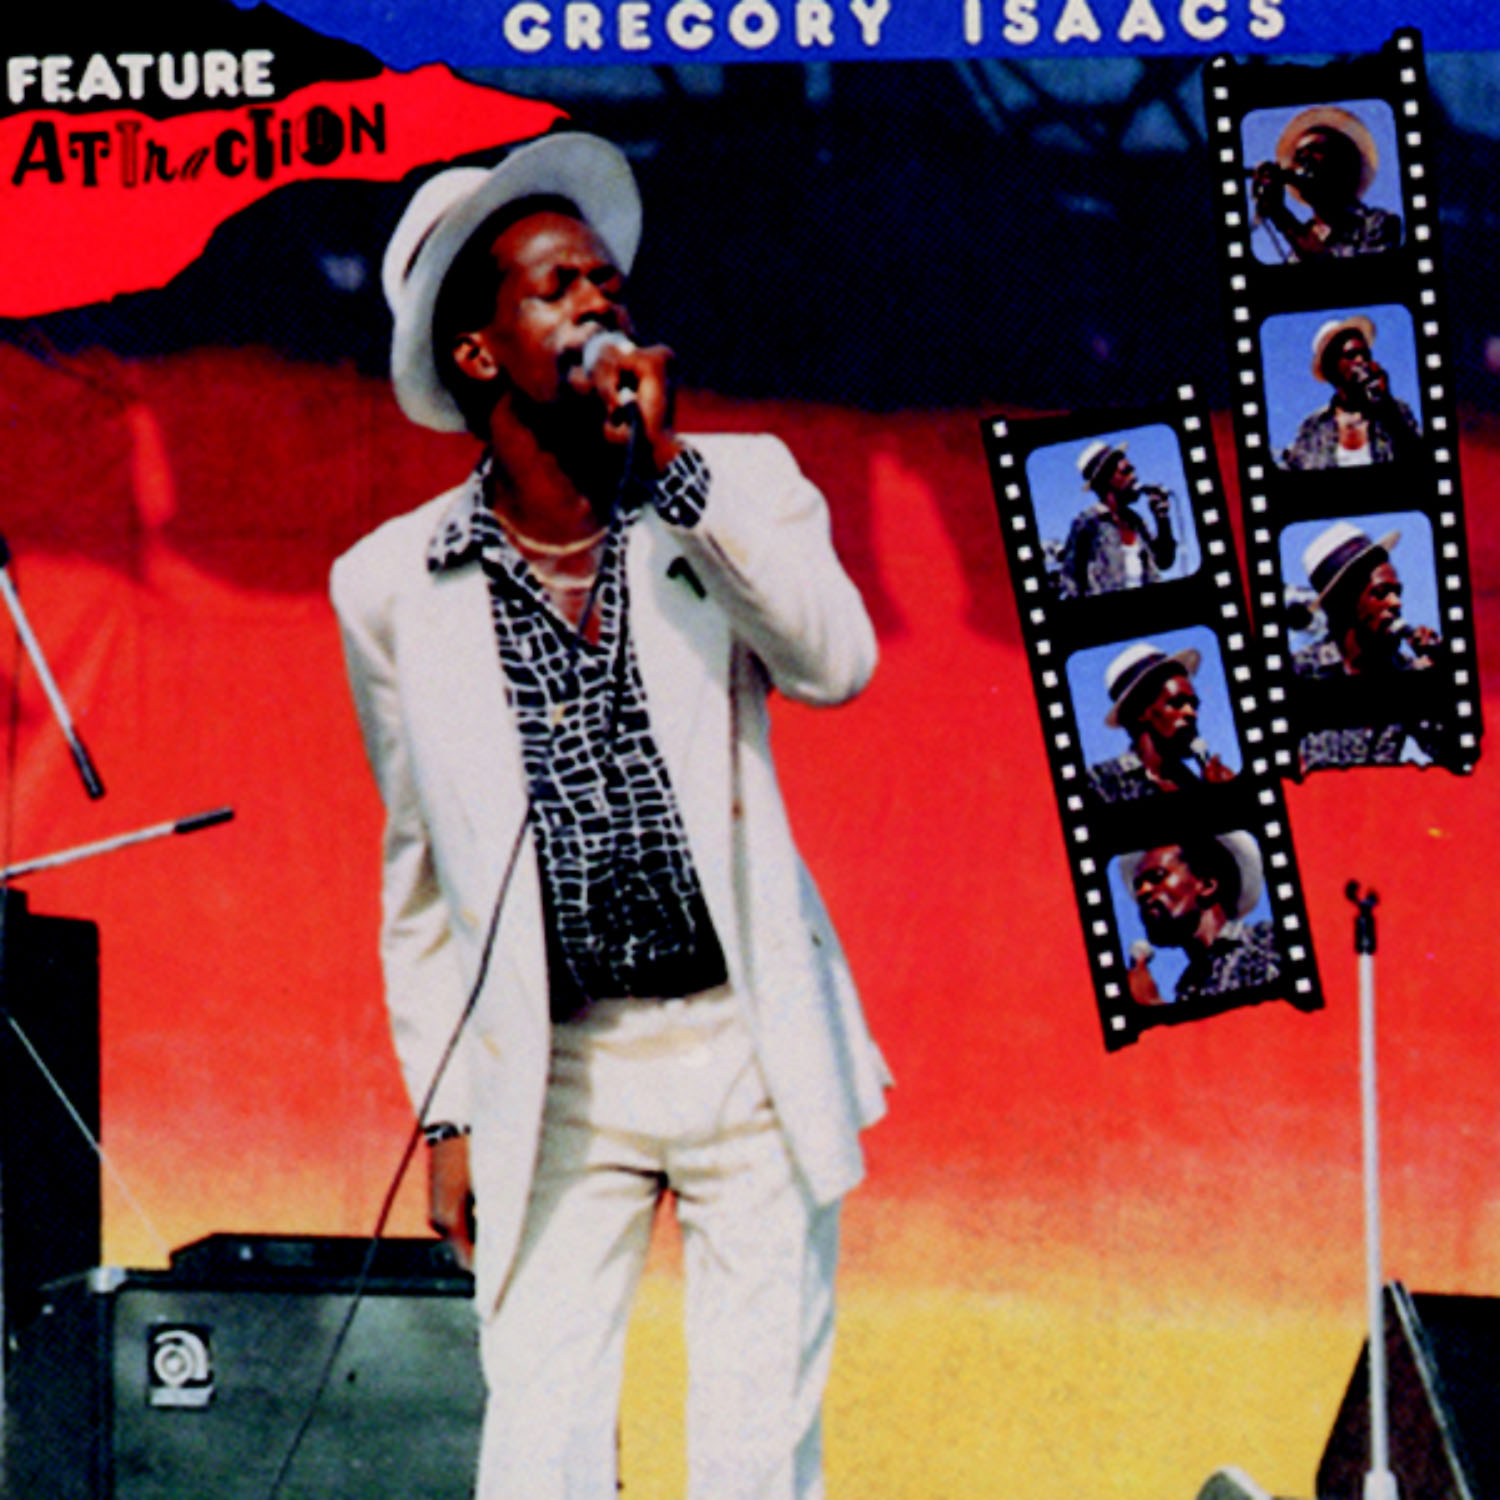 Gregory Isaacs – Feature Attraction